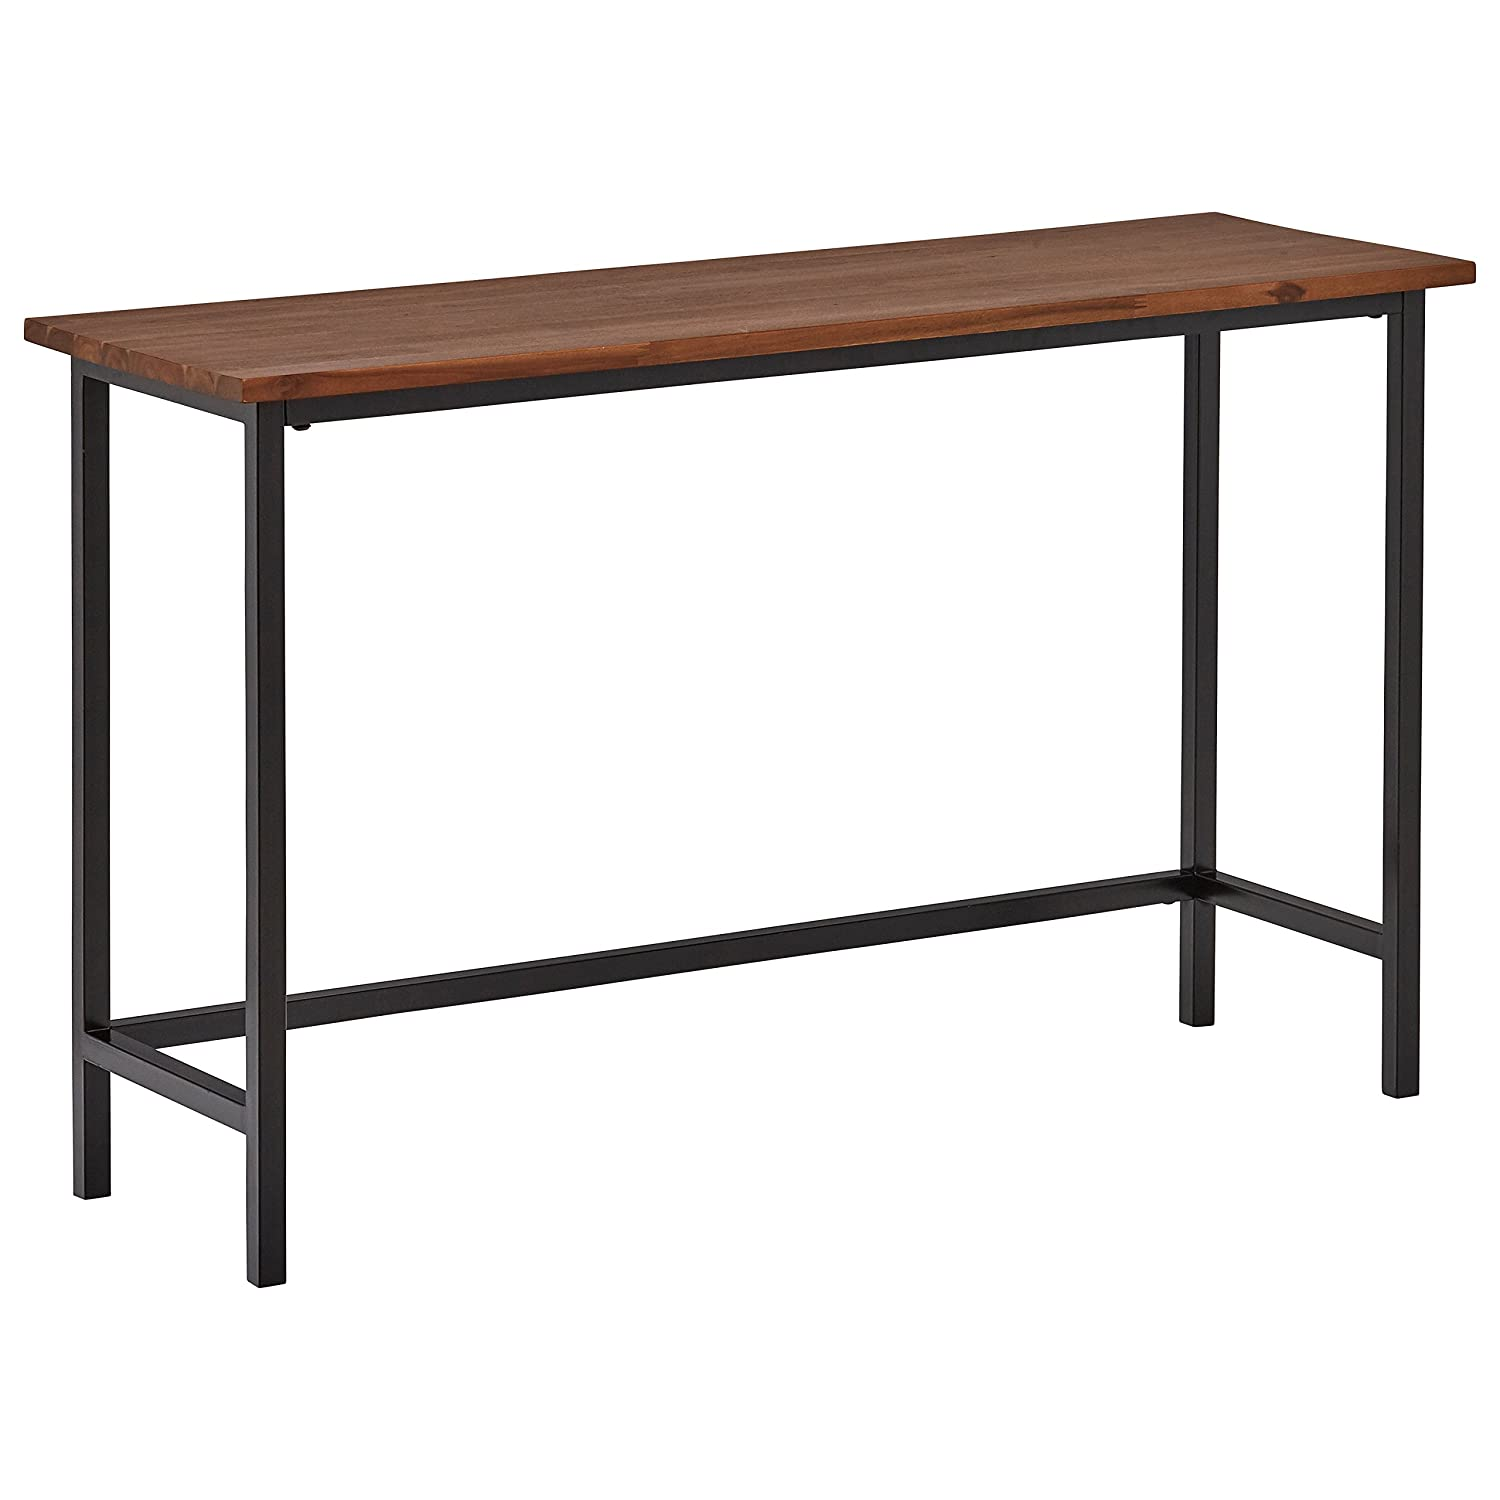 "Rivet Industrial Counter Height Table, 47.25"" W, Walnut by Rivet"